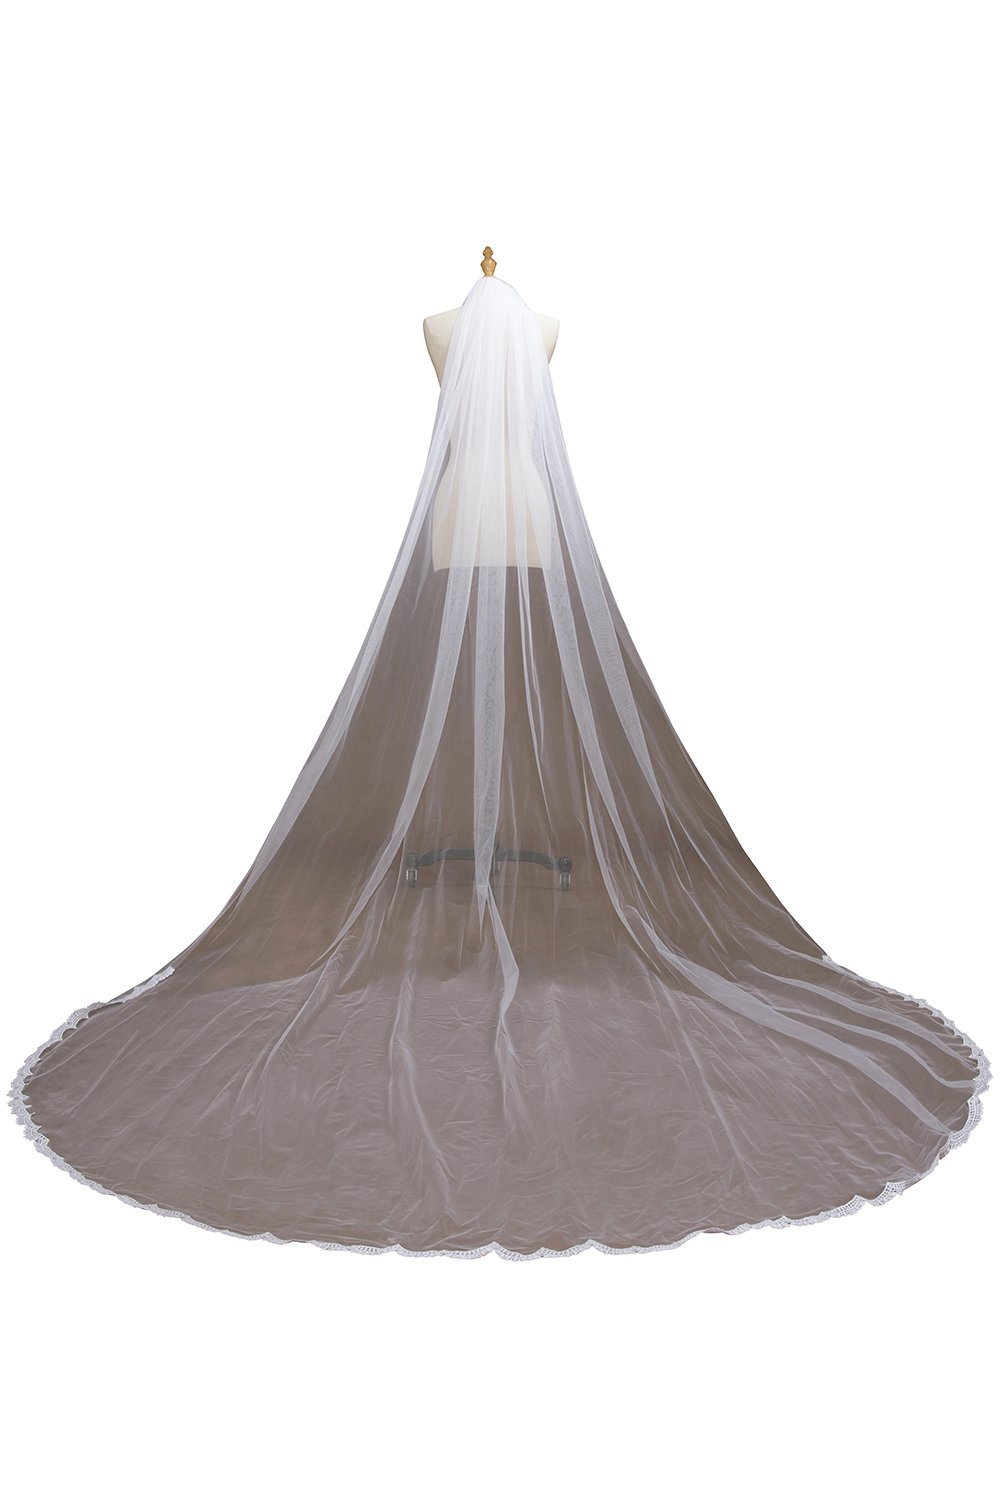 Women's 1 Tier Cathedral Lace Wedding Bridal Veil with Comb for Bride,Ivory